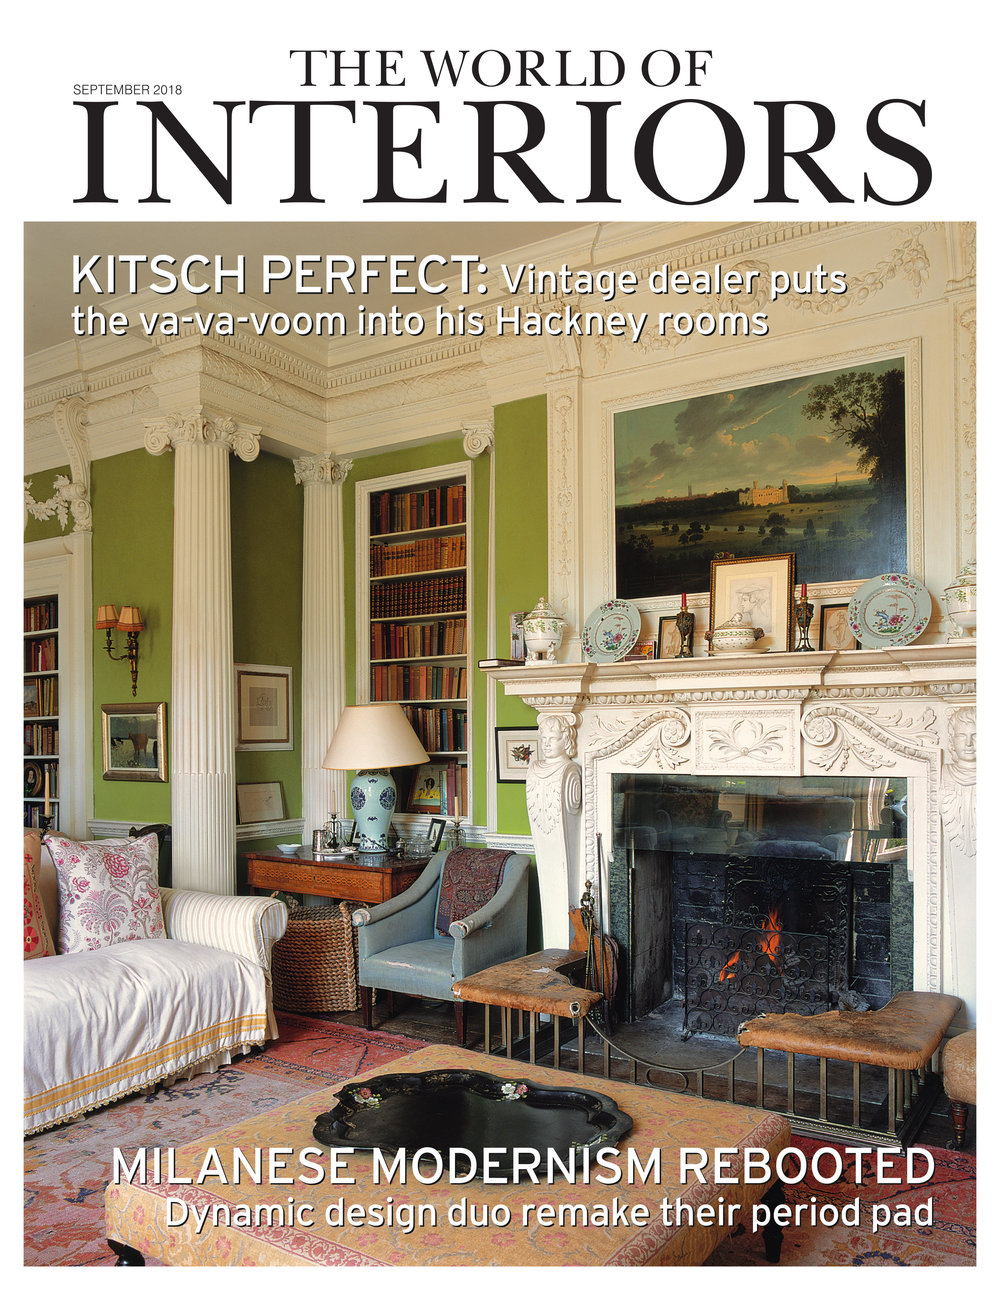 The World of Interiors 09-2018